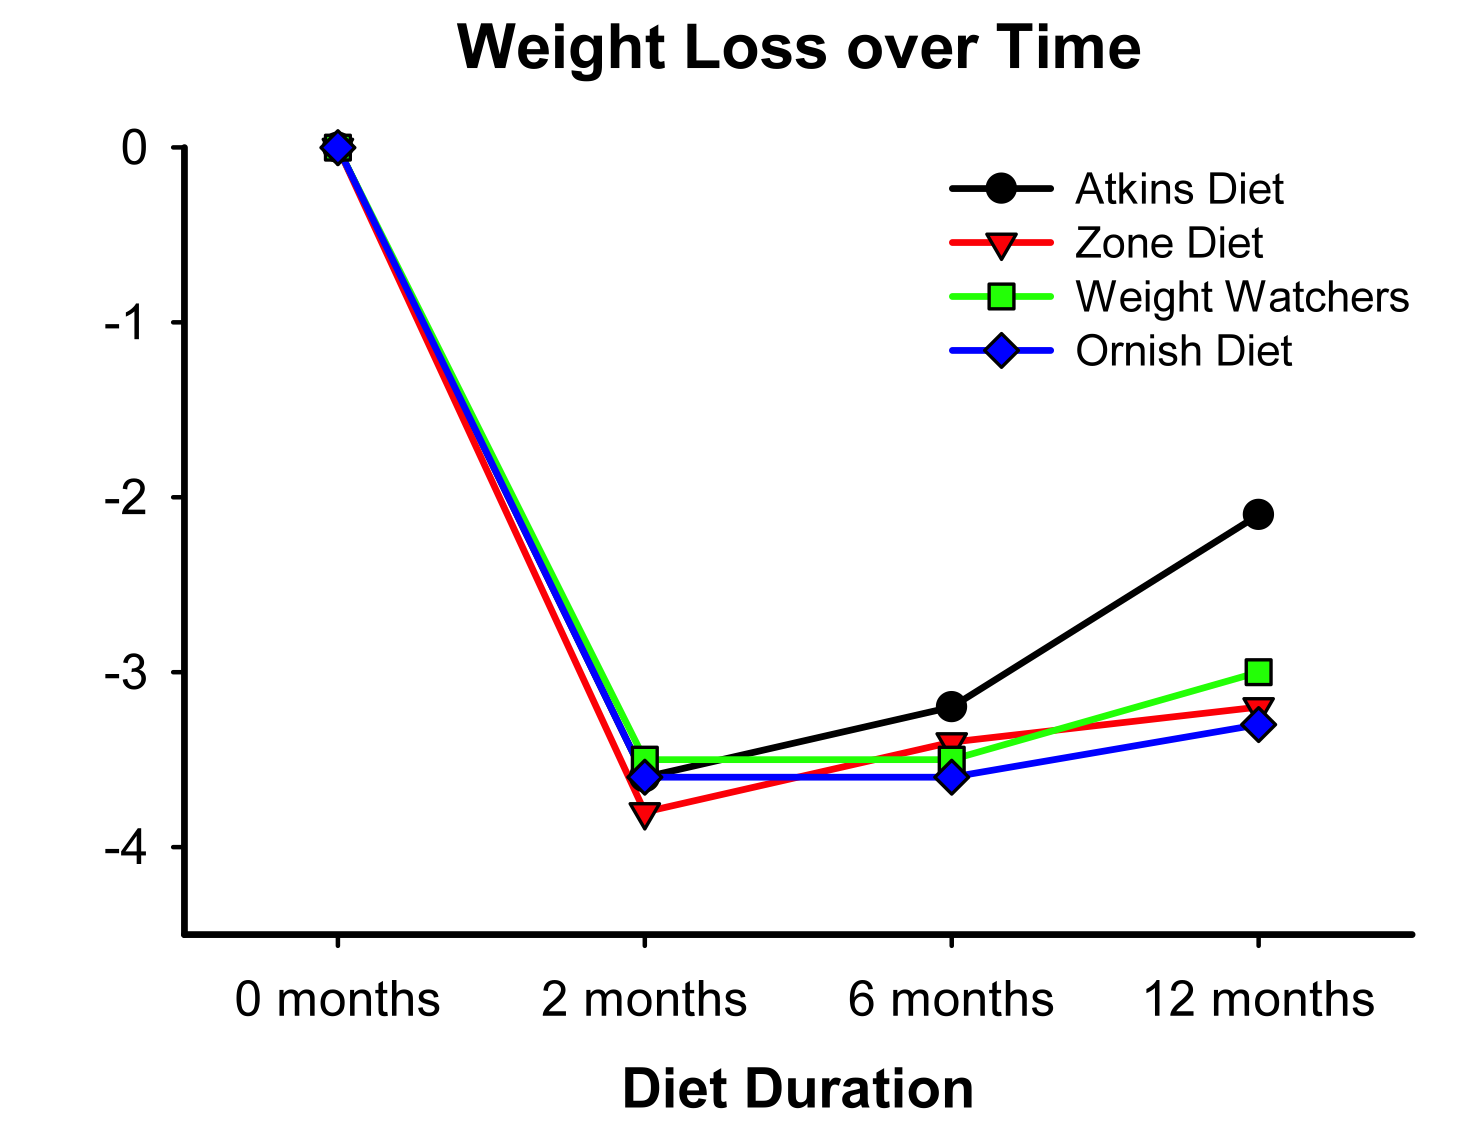 Weight_Loss_over_Time_Dansinger_Figure.png